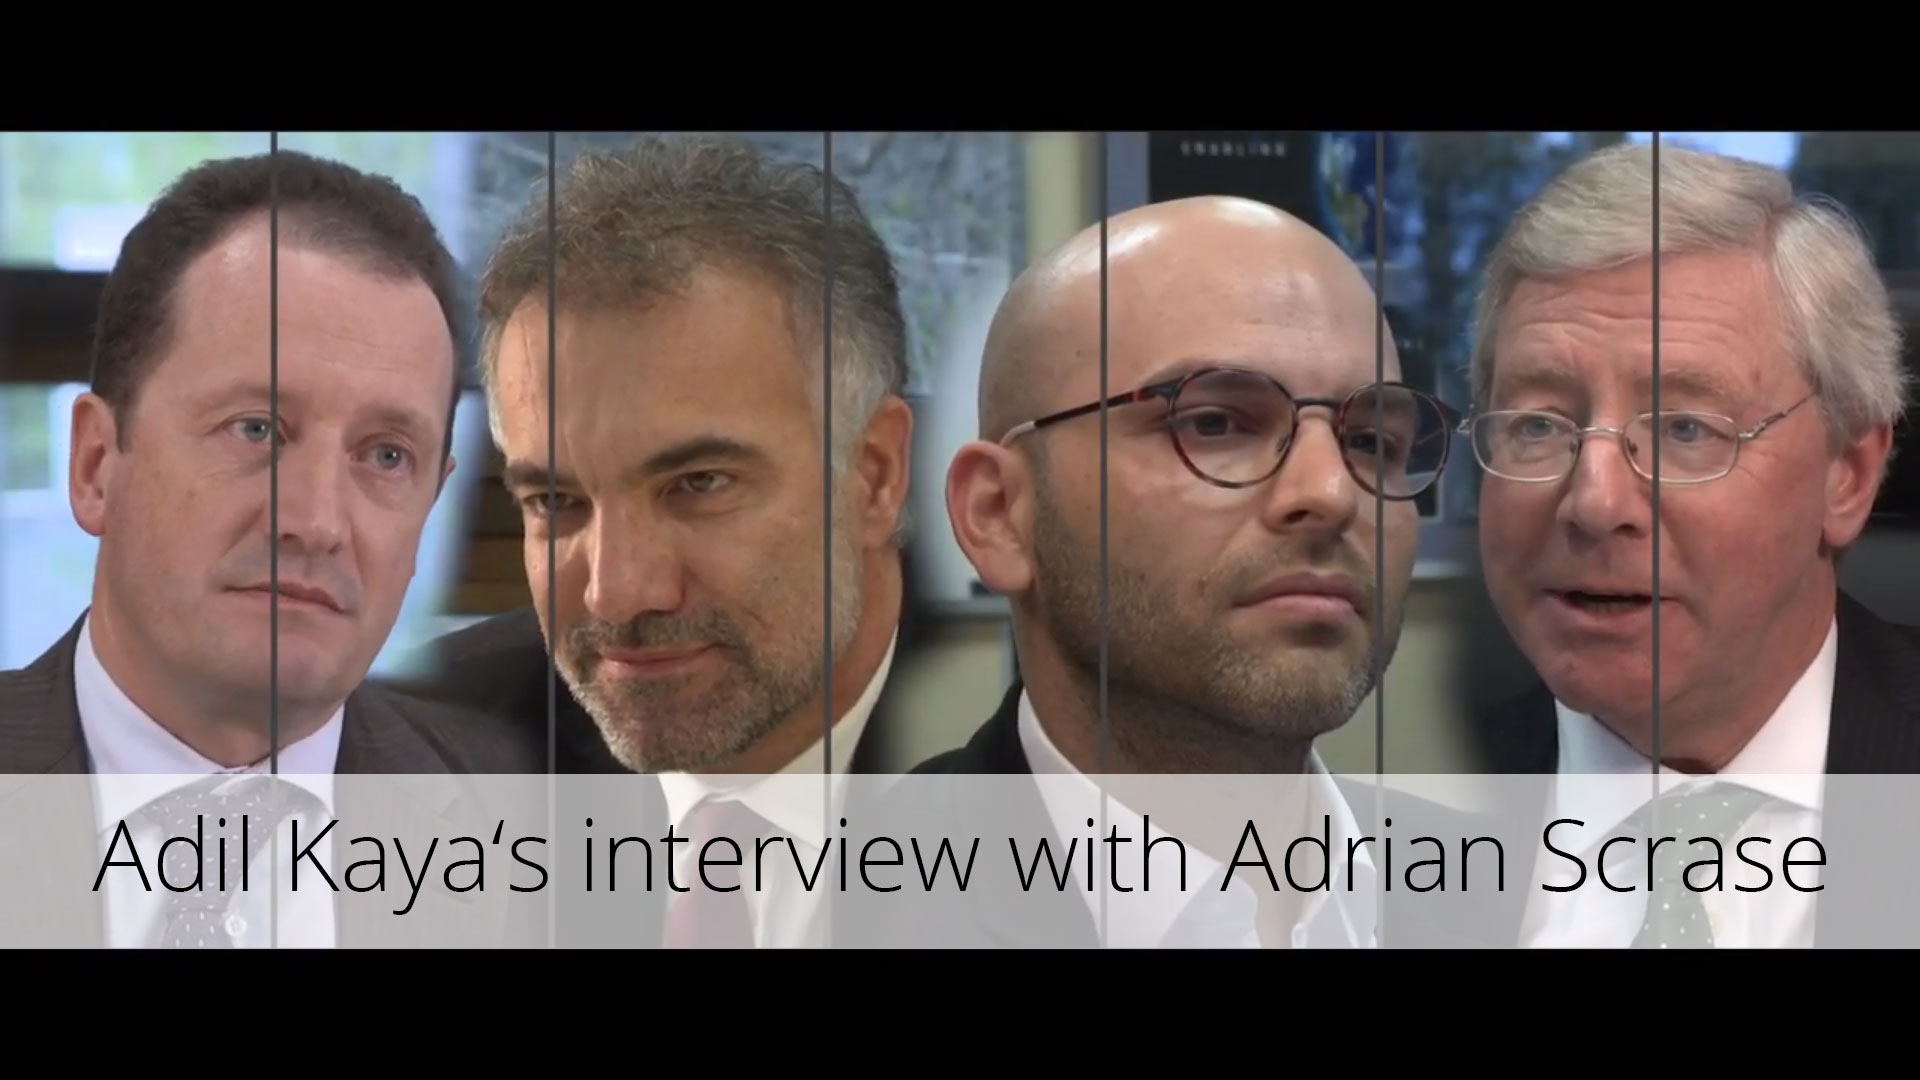 Adil Kaya interwiew with Adrias Scrase, ETSI, 5GPP